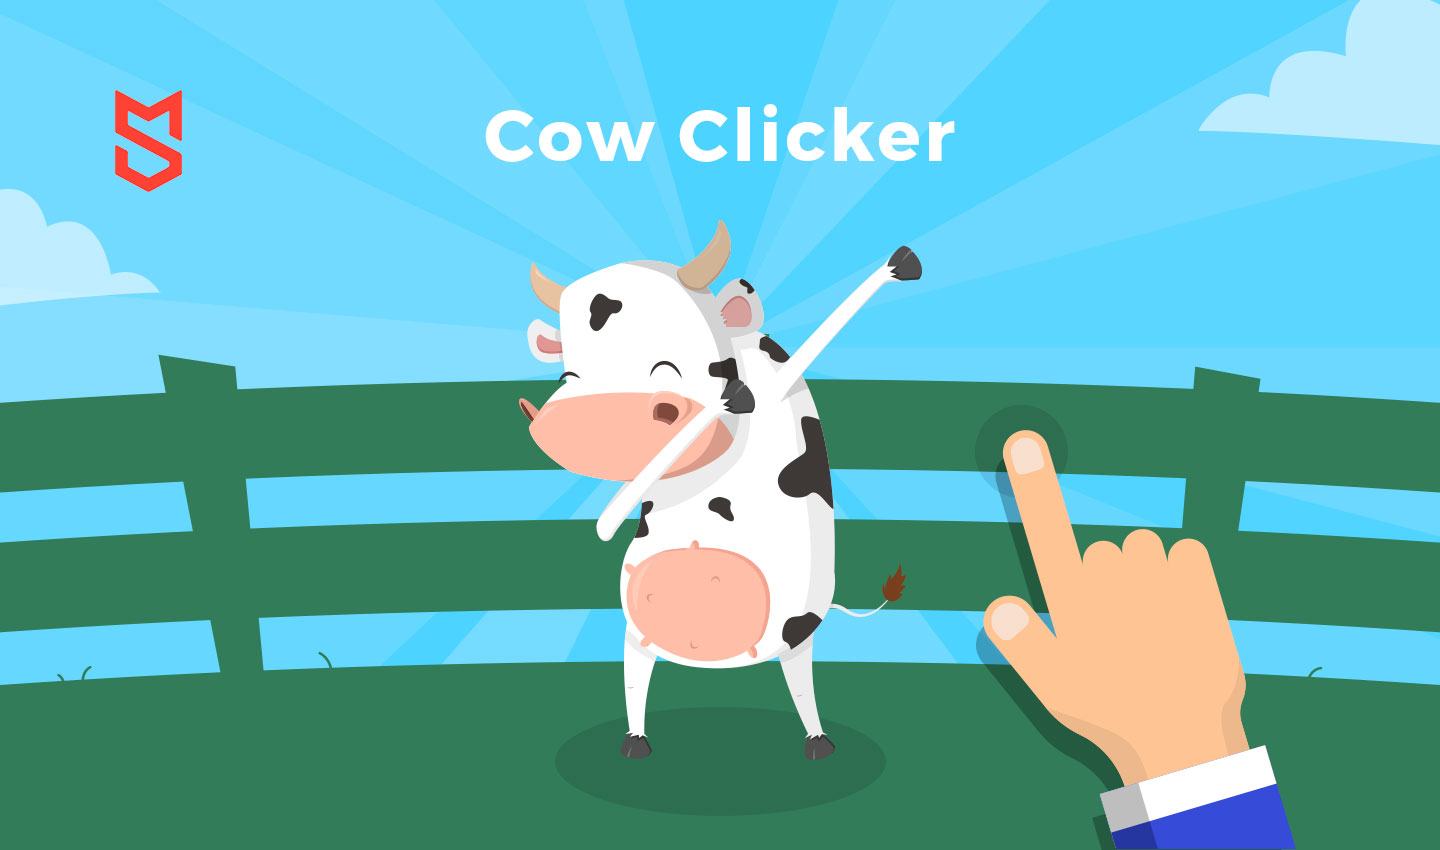 cow clicker game